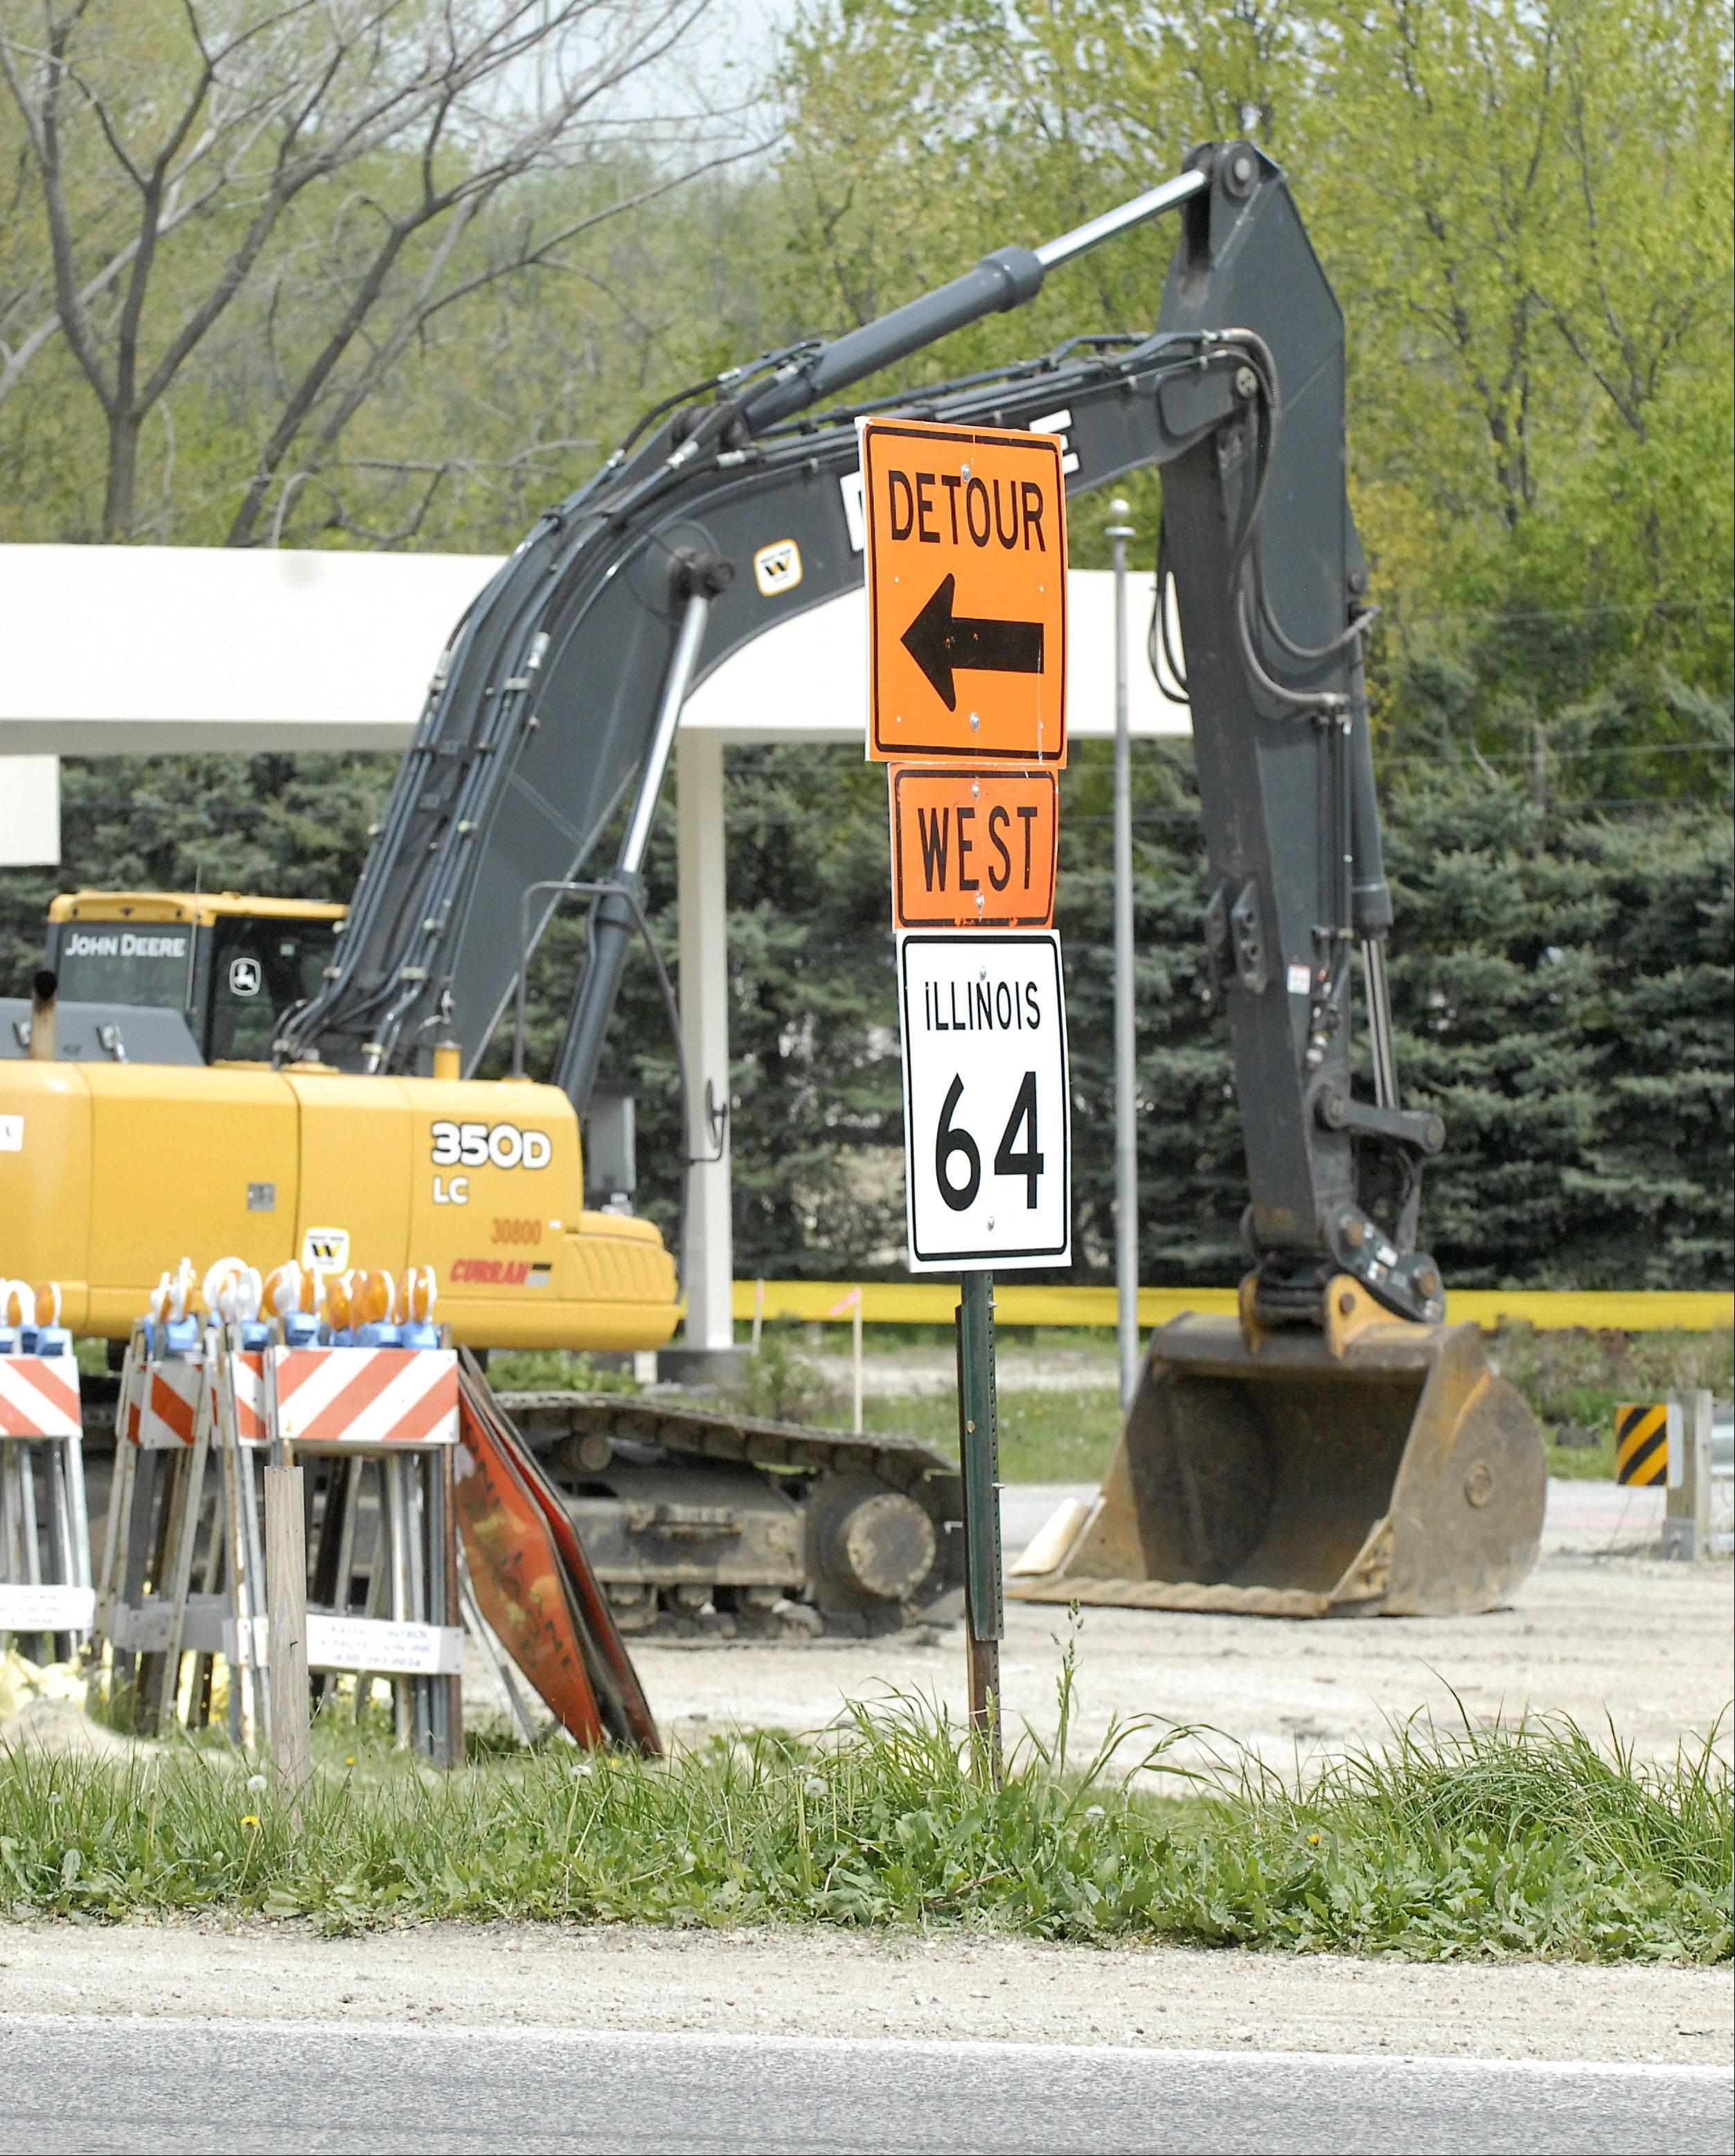 Roadwork will begin next week at Routes 47 and 64 in Lily Lake. Eastbound Route 64 is now blocked, westbound Route 64 is open, as is Route 47 in both directions. The state is installing a traffic signal, turn lanes, new culverts and a retaining wall. The project is expected to last until November, according to the Illinois Department of Transportation.